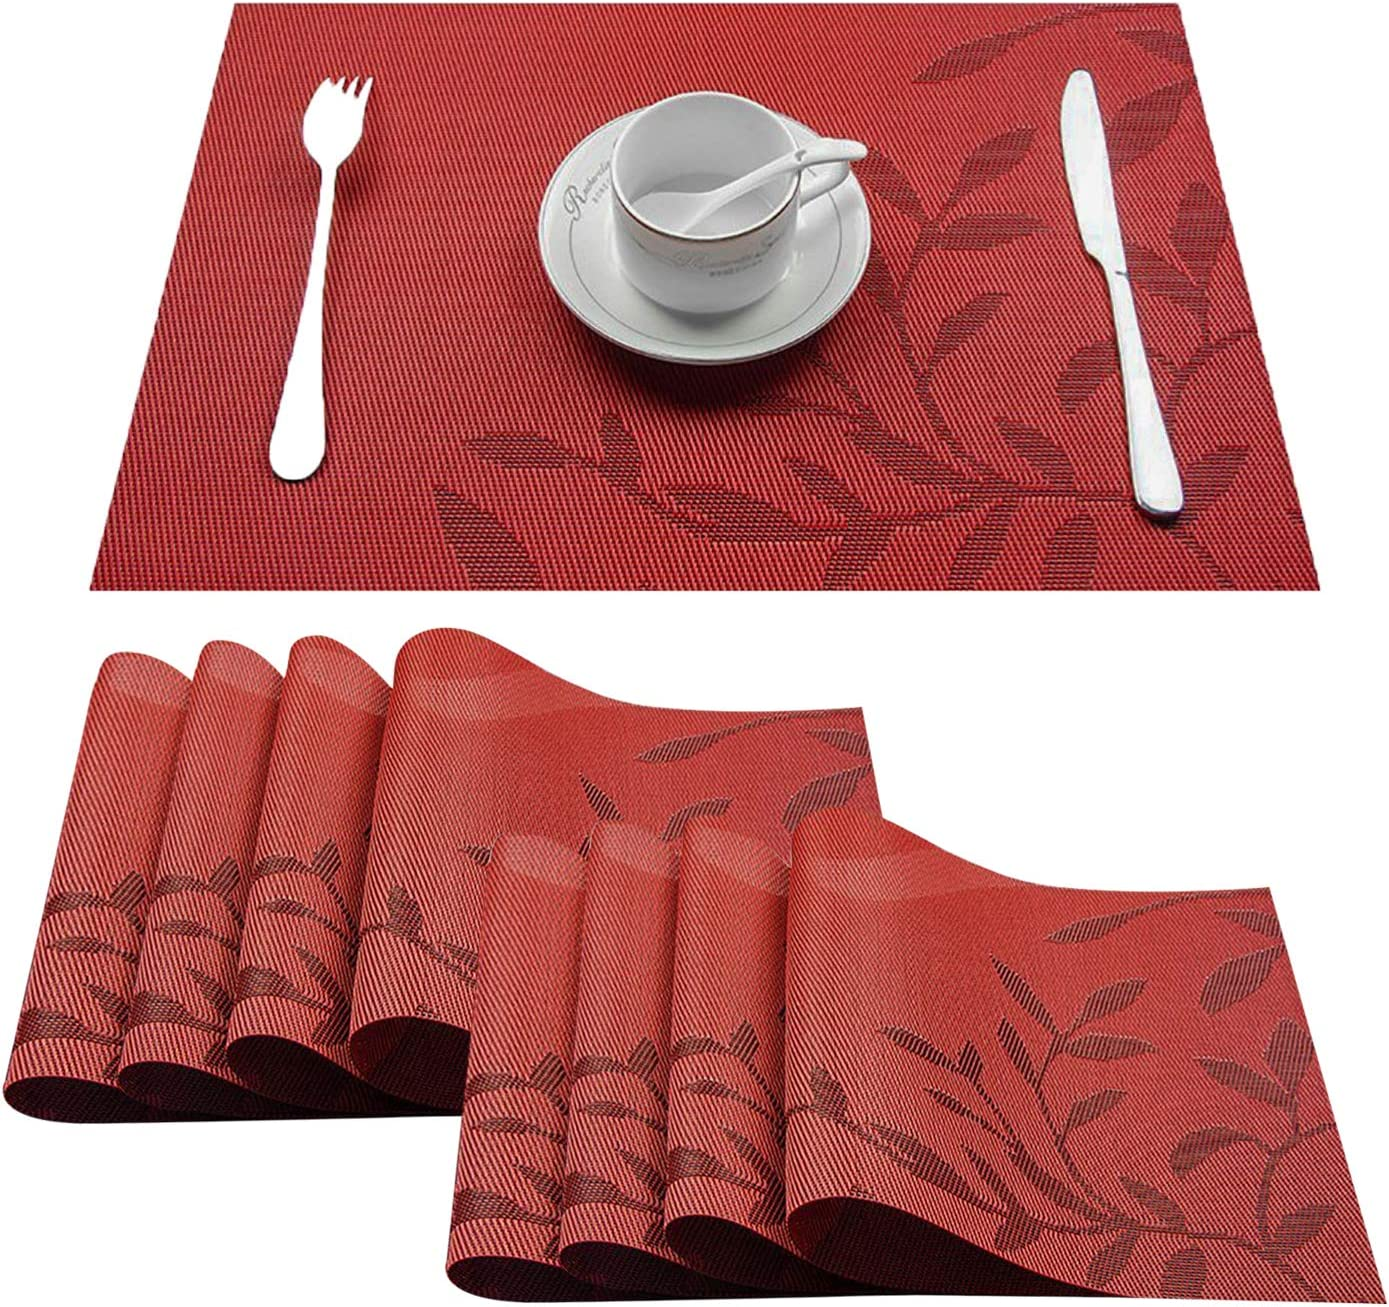 Top Finel Placemats,Plastic Table Mats Set of 8,Heat Resistant Washable Place Mats for Dinner Table,Red